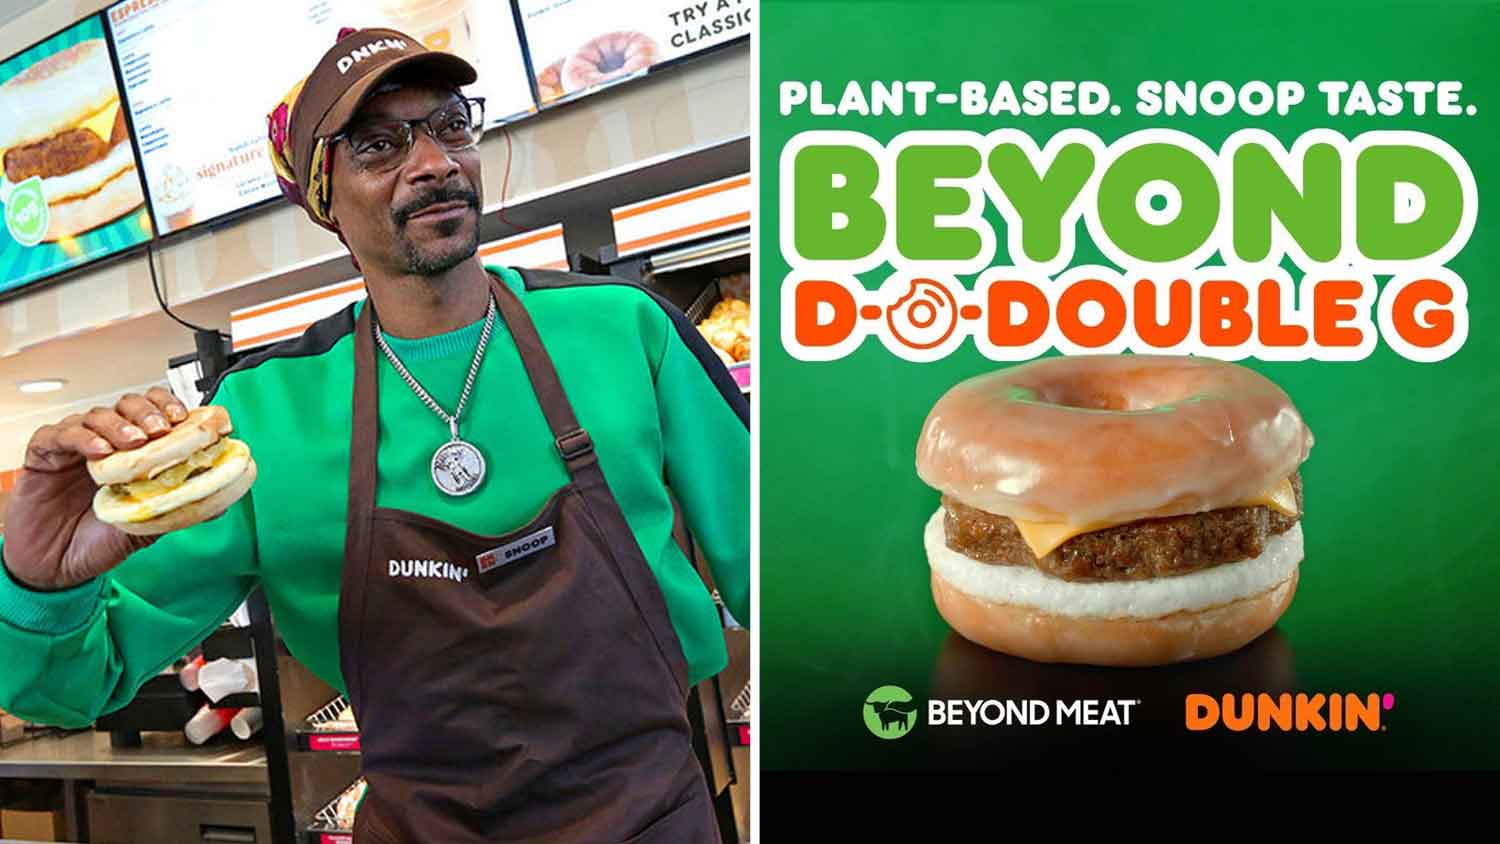 Snoop Dogg Stars In Dunkin's New Vegan Sausage Television Commercial